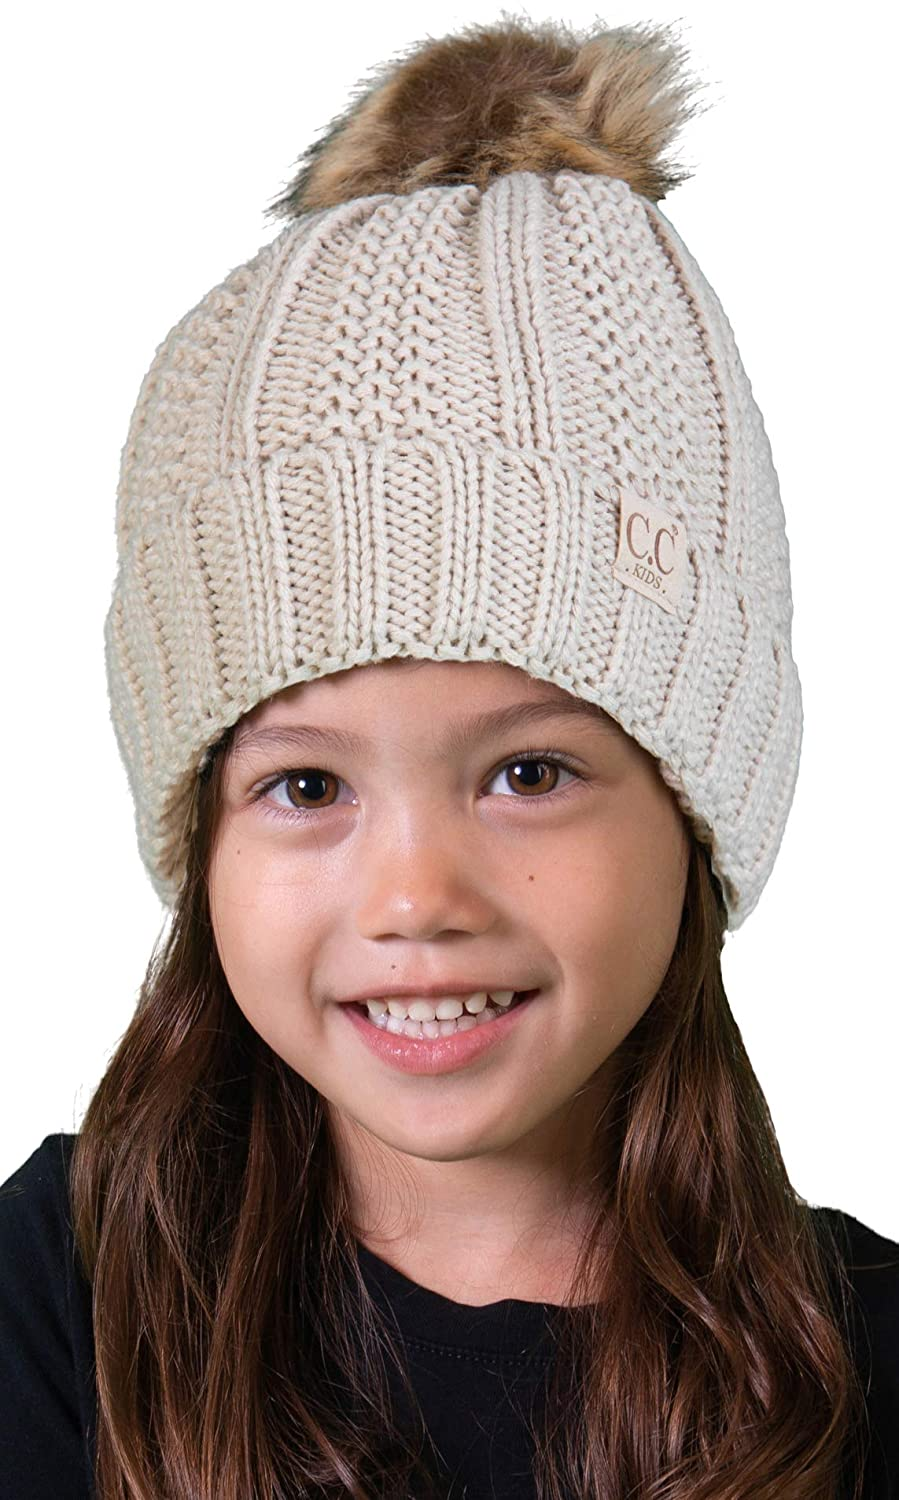 22df7fa0761 Amazon.com  H-1820kids-60 Fuzzy Lined Pom Hat - Beige  Clothing